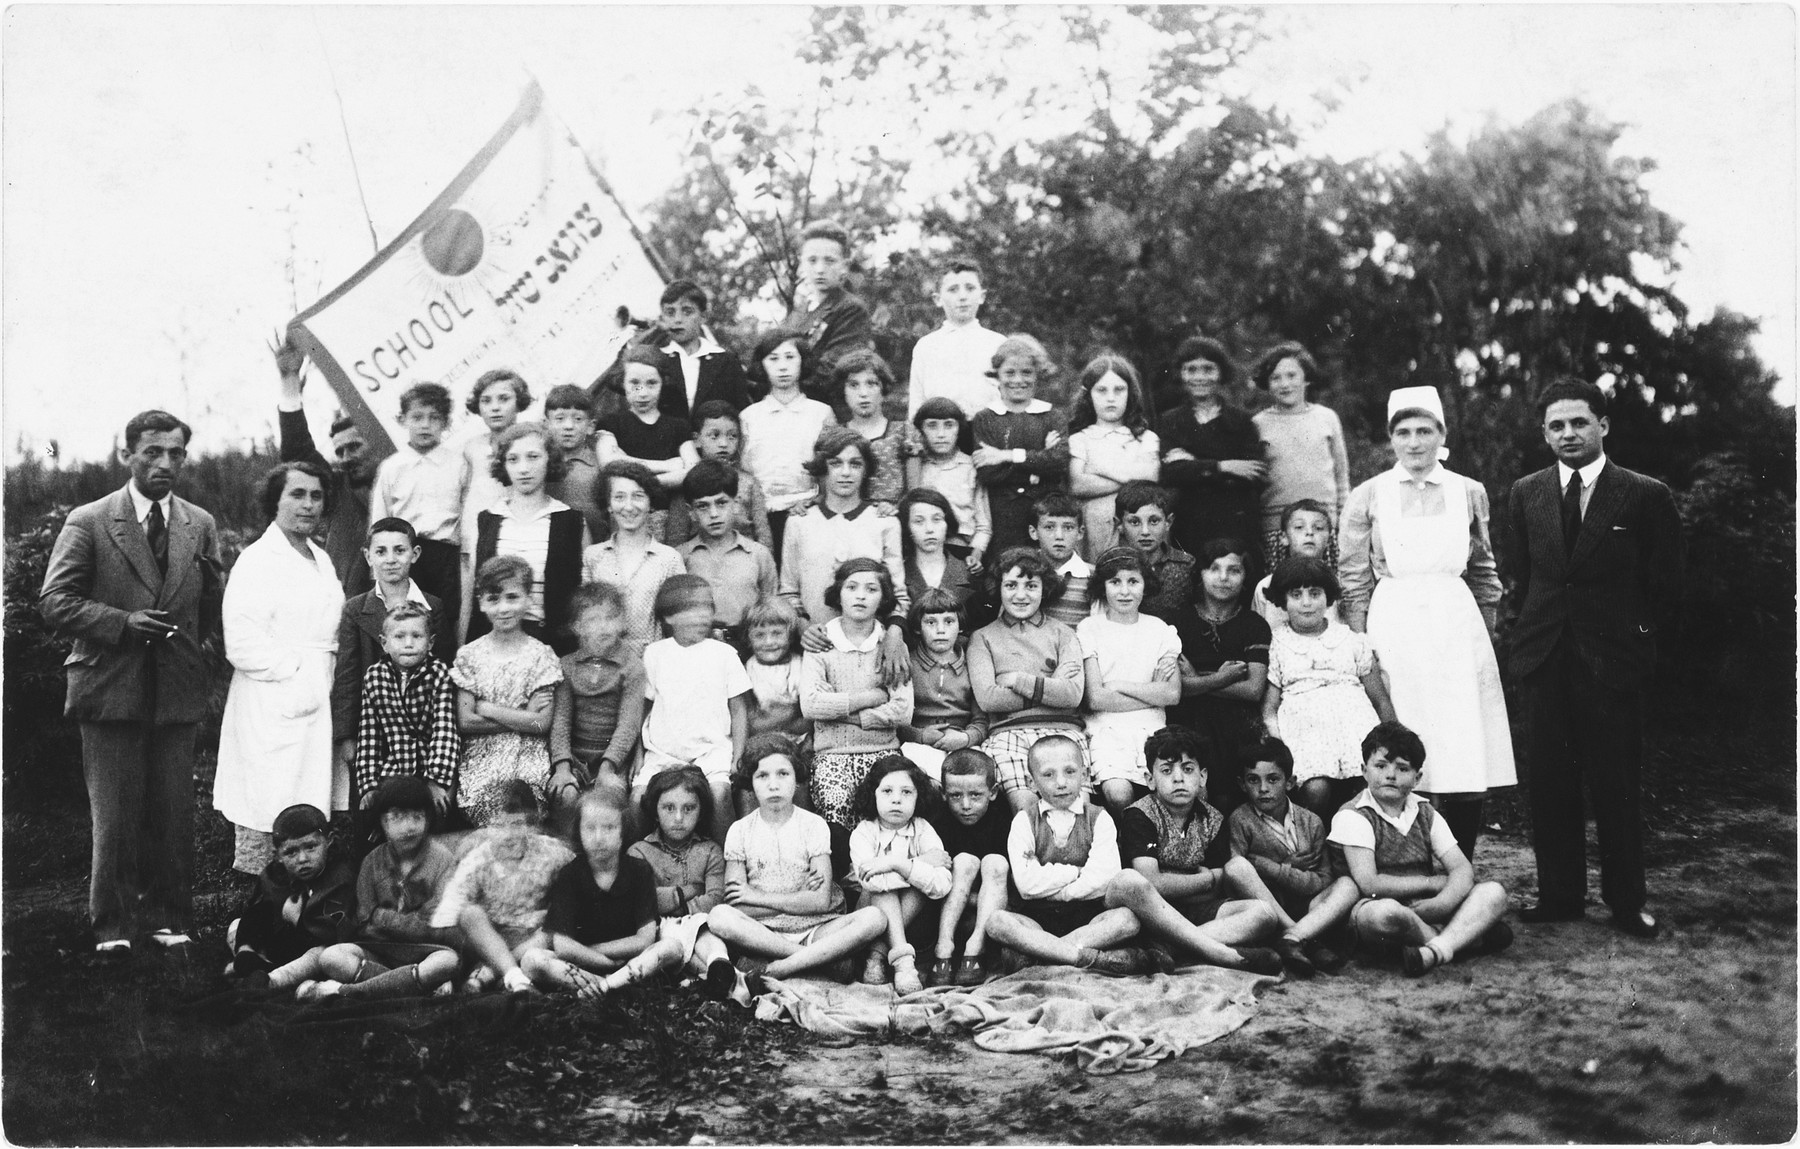 Group portrait of the children and faculty of the Jewish Zugob school, sponsored by the Jewish Artisan Association.  Among thos pictured is Lea Rubinstein, standing in the back row, right.